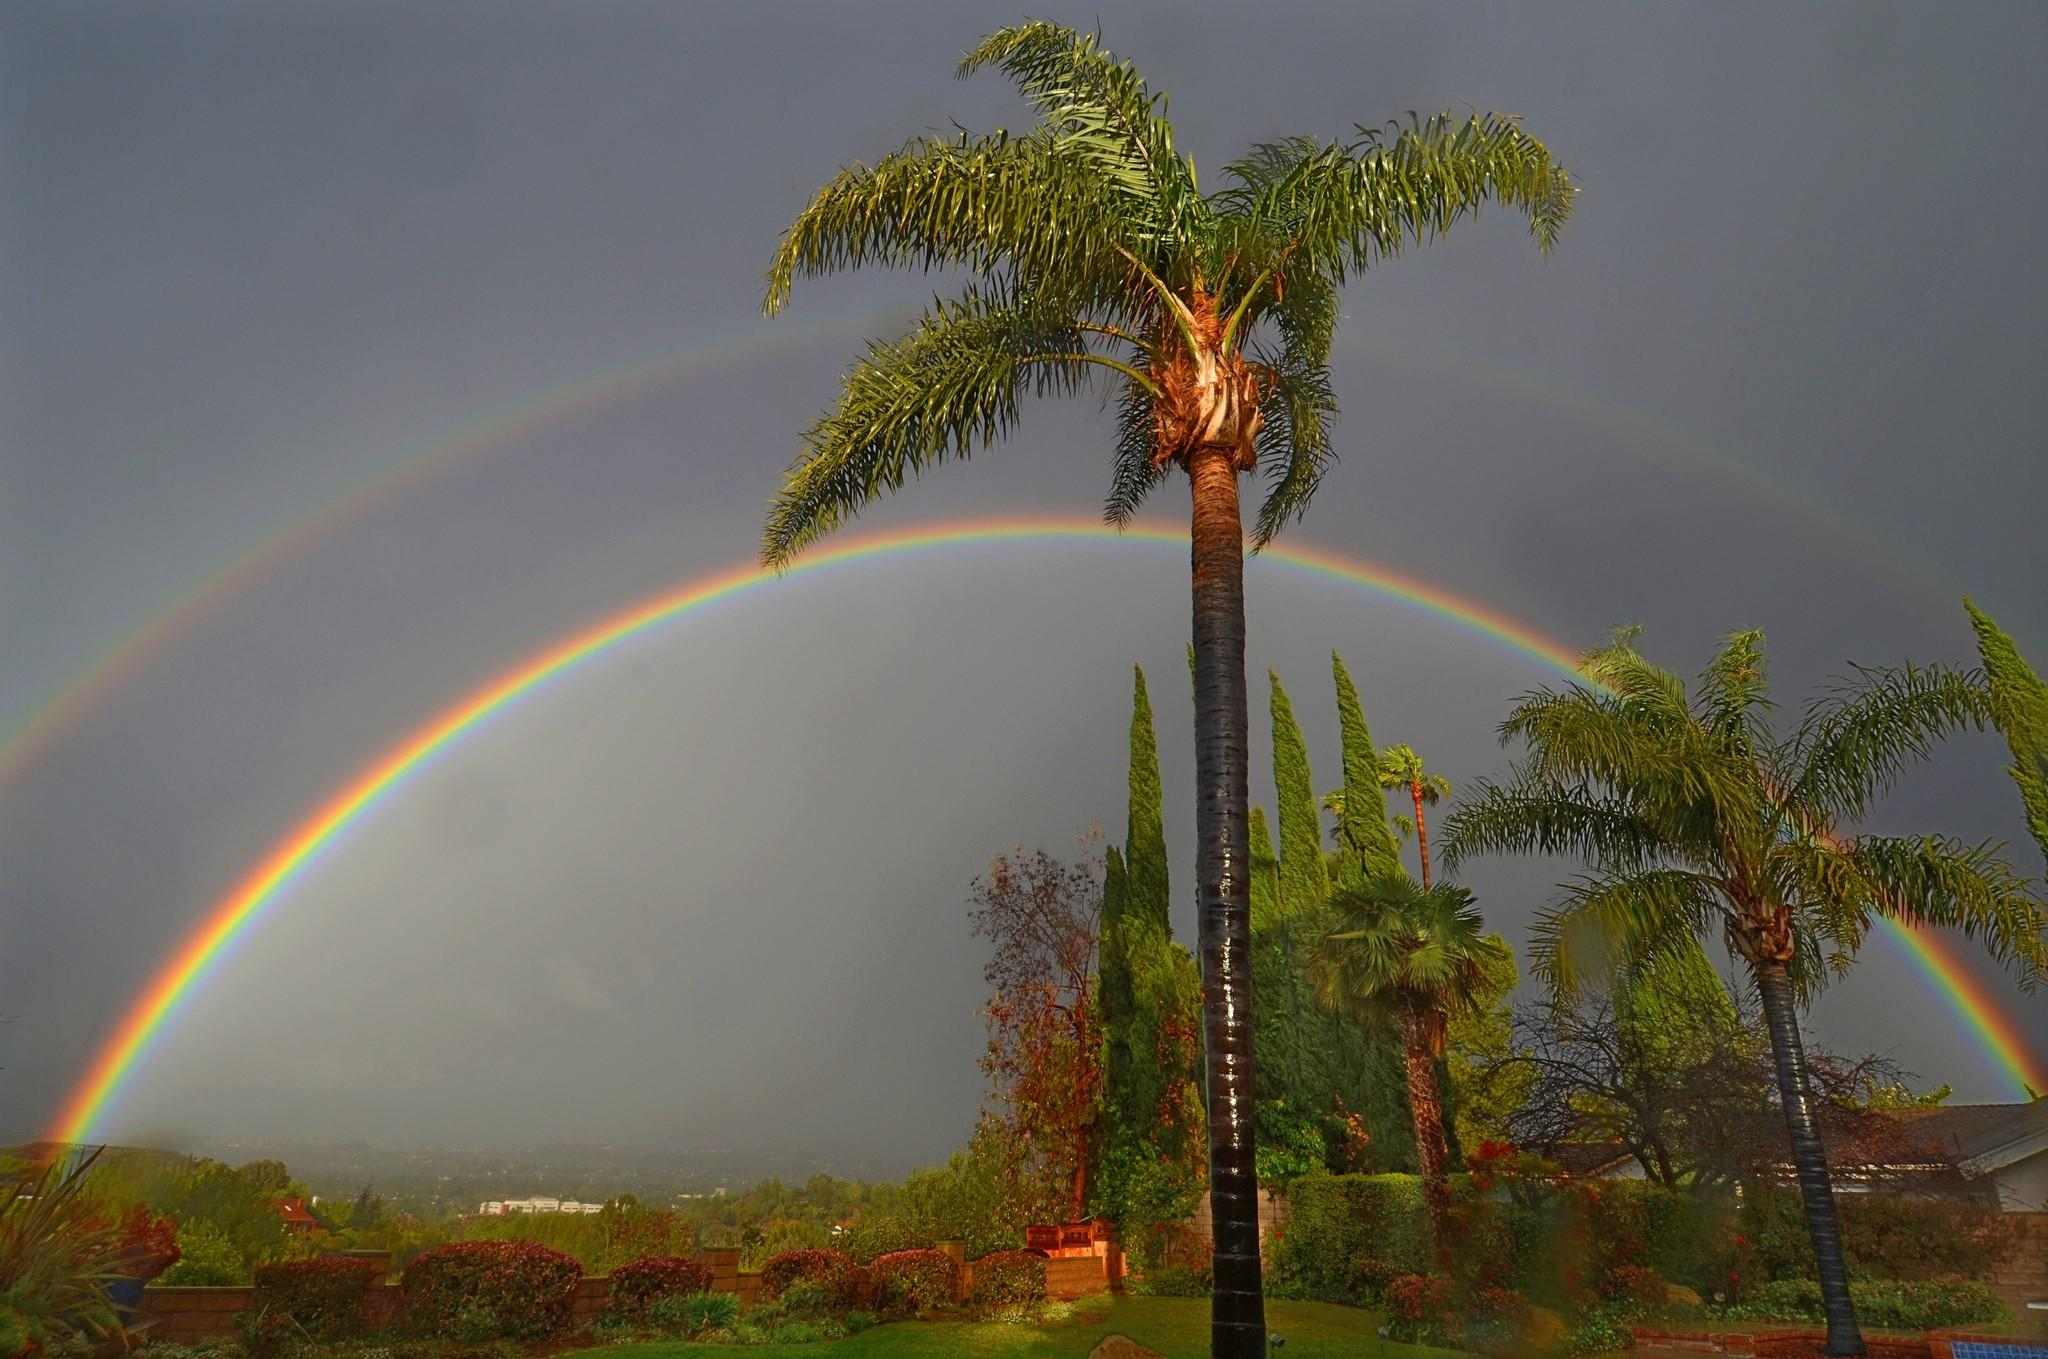 In a brief flash of sunlight between rainfalls, a double rainbow appears over Thousand Oaks.